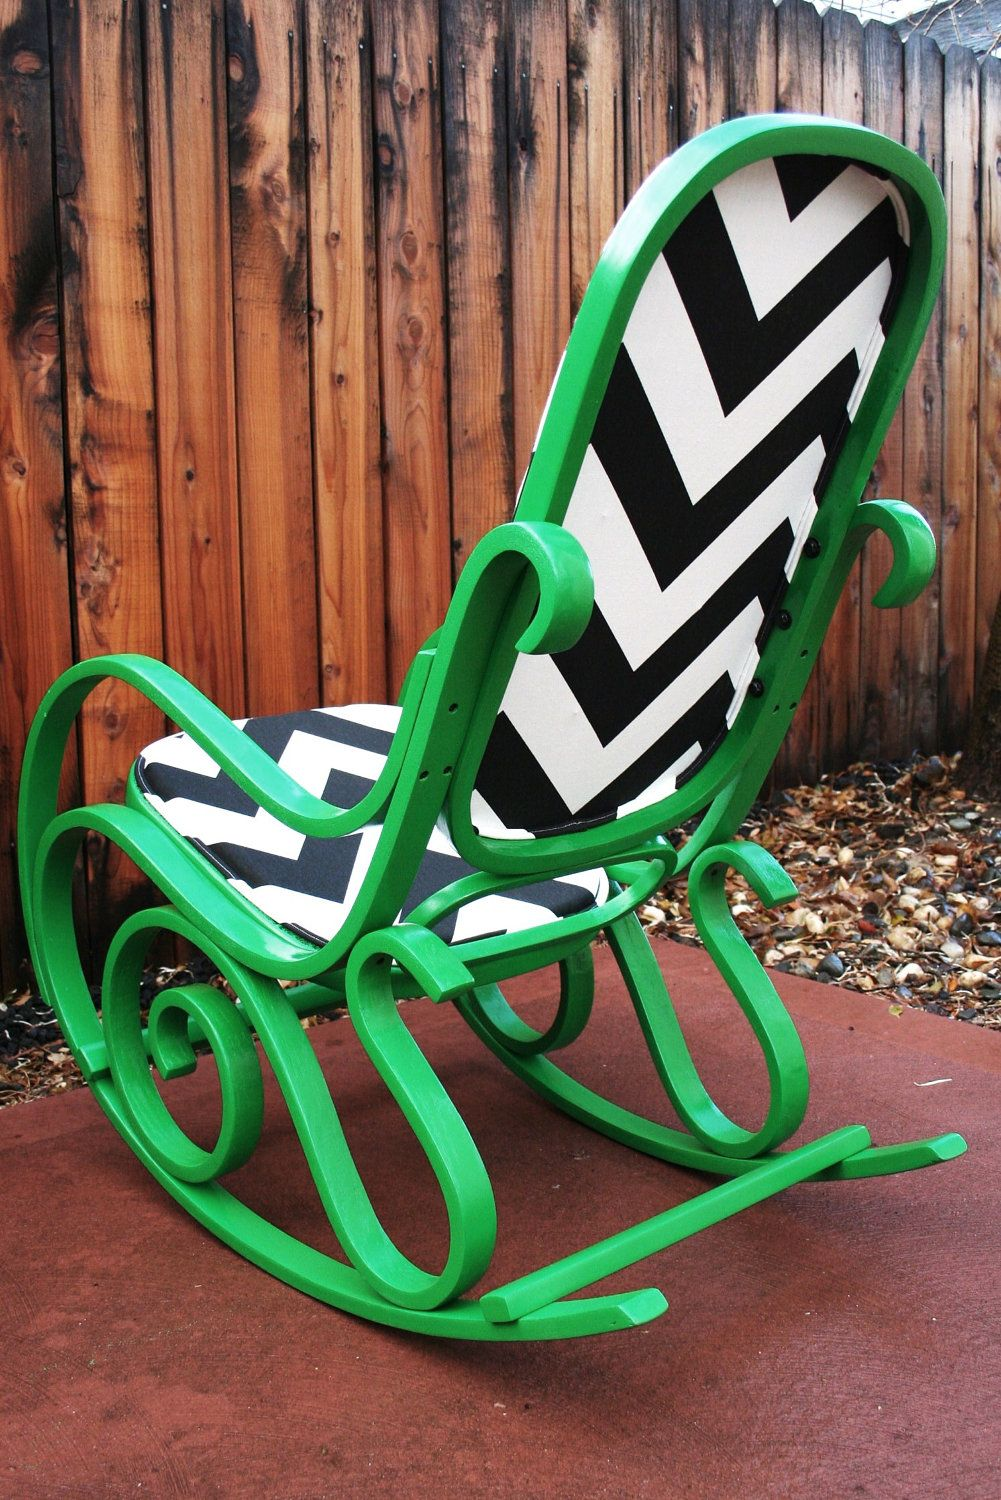 Thonet Style Rocking Chair